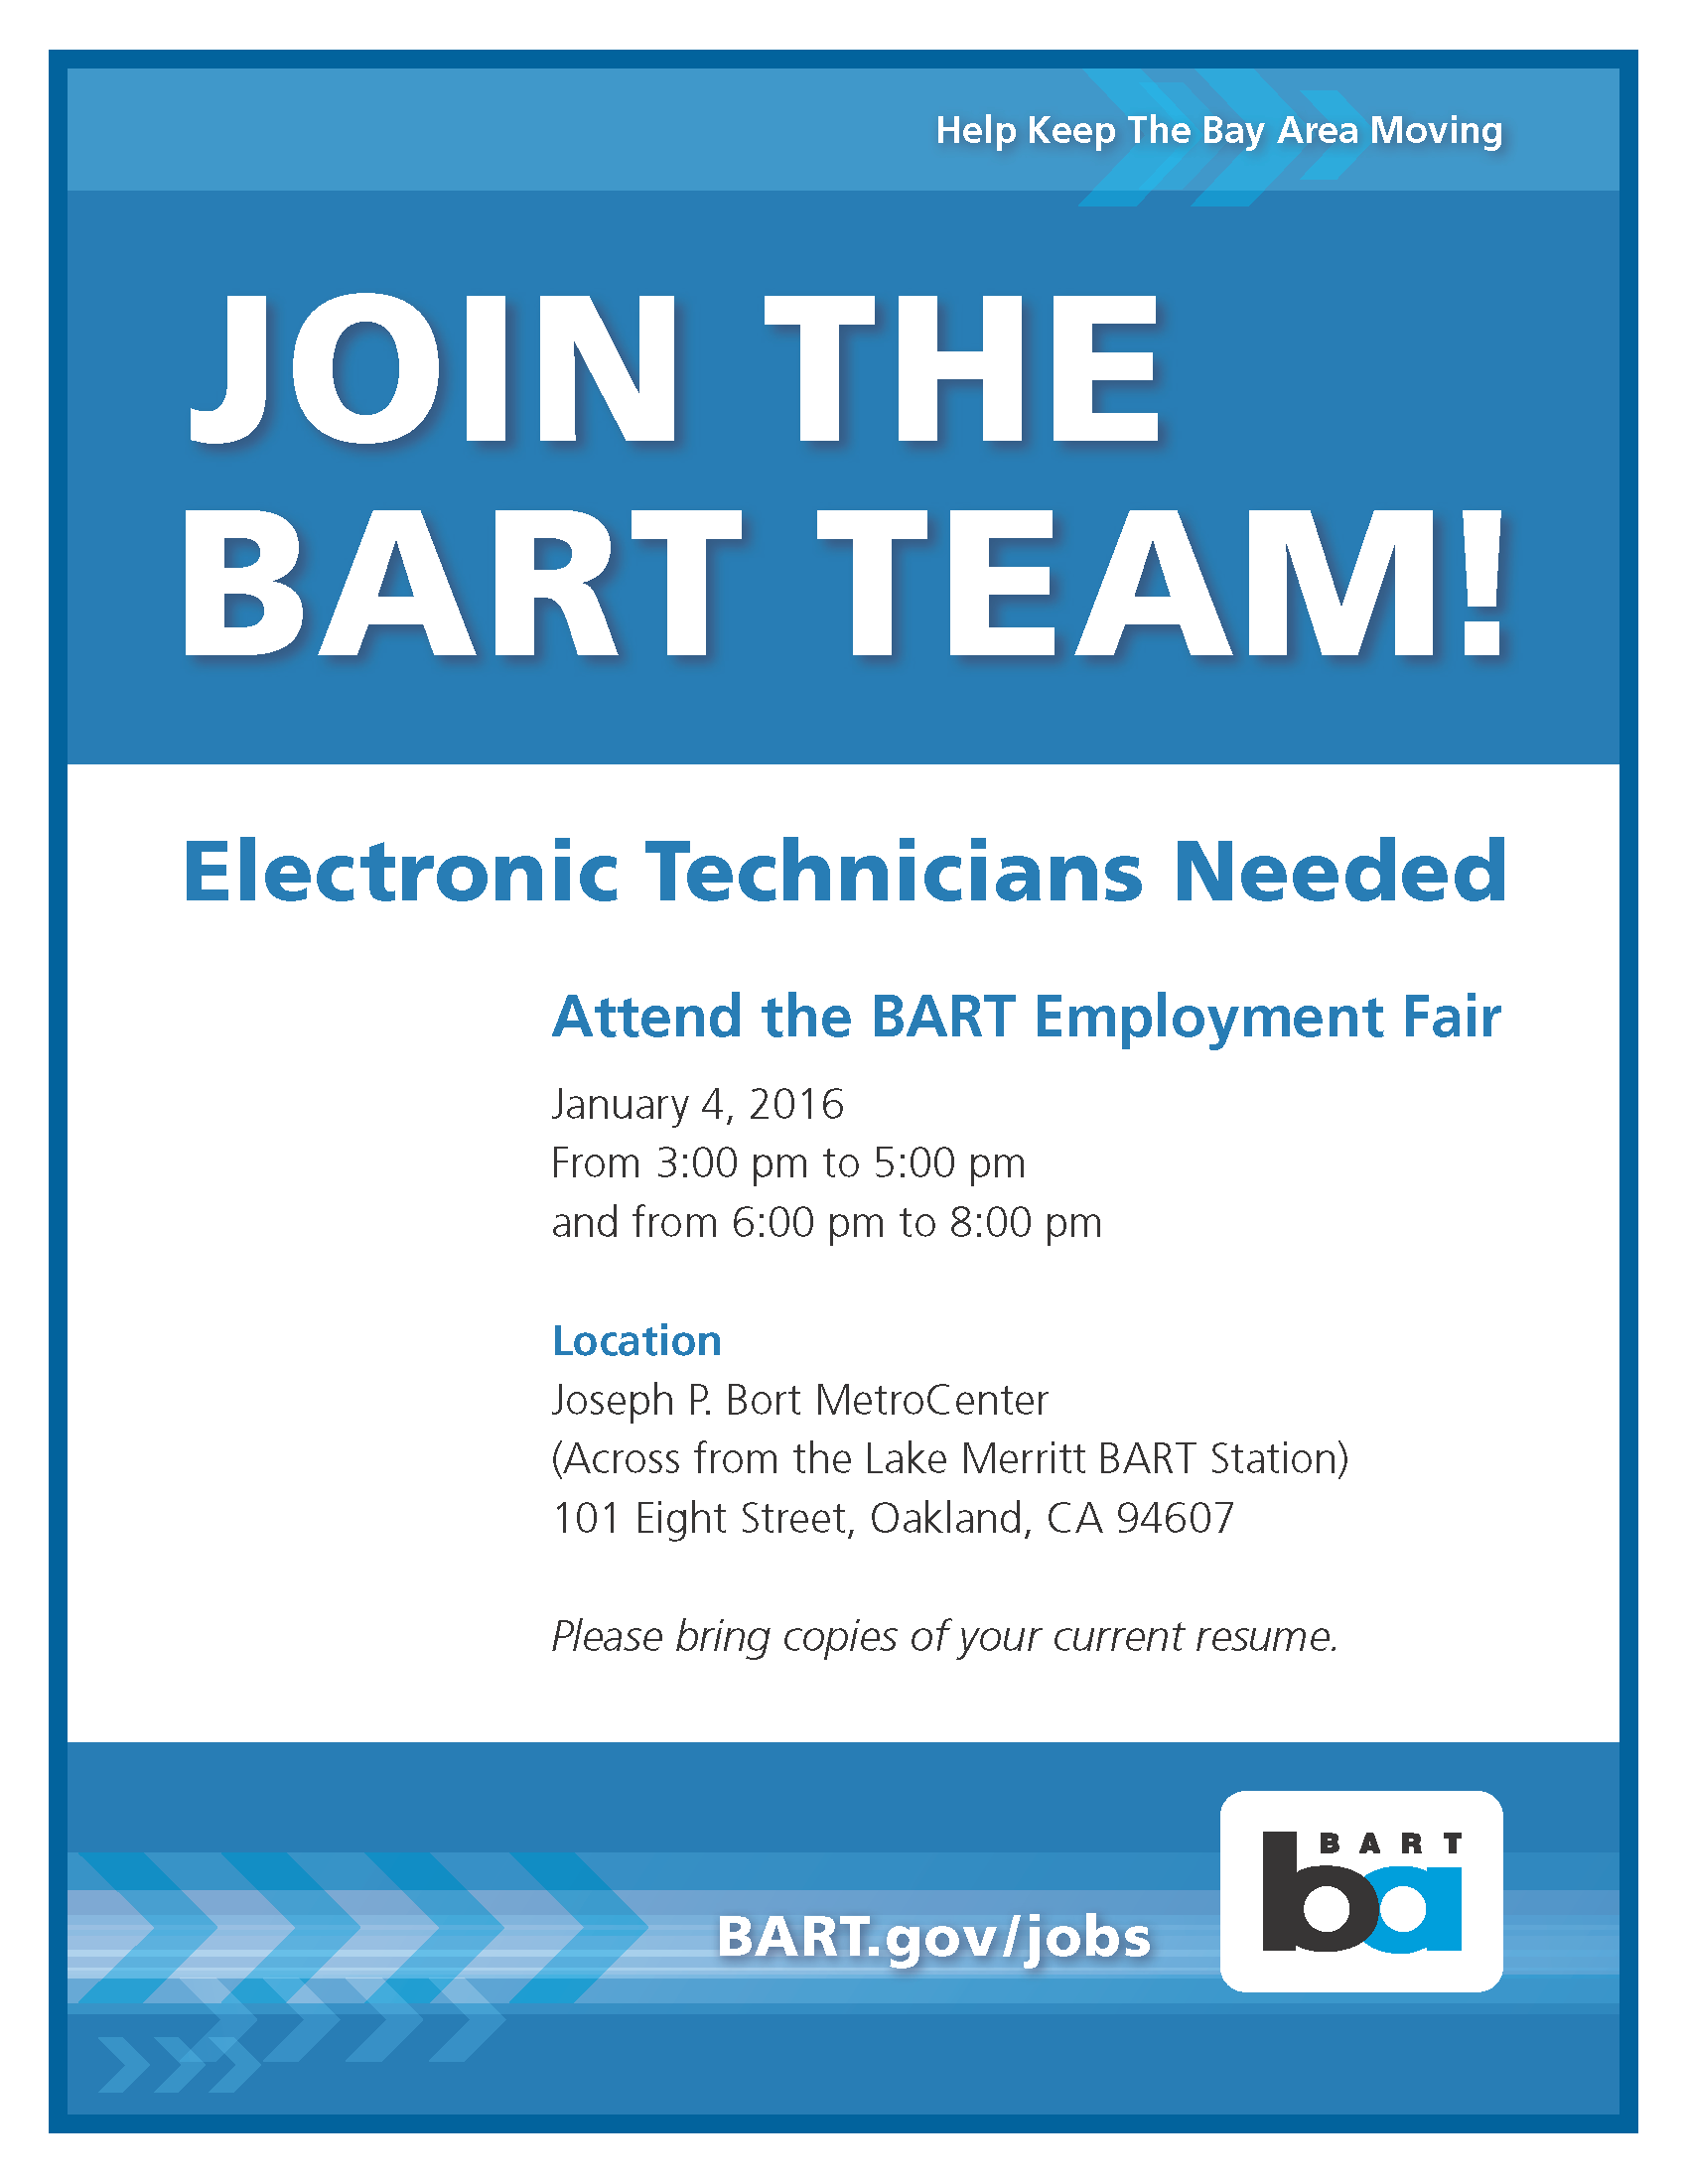 Join the BART Team HR Flyer